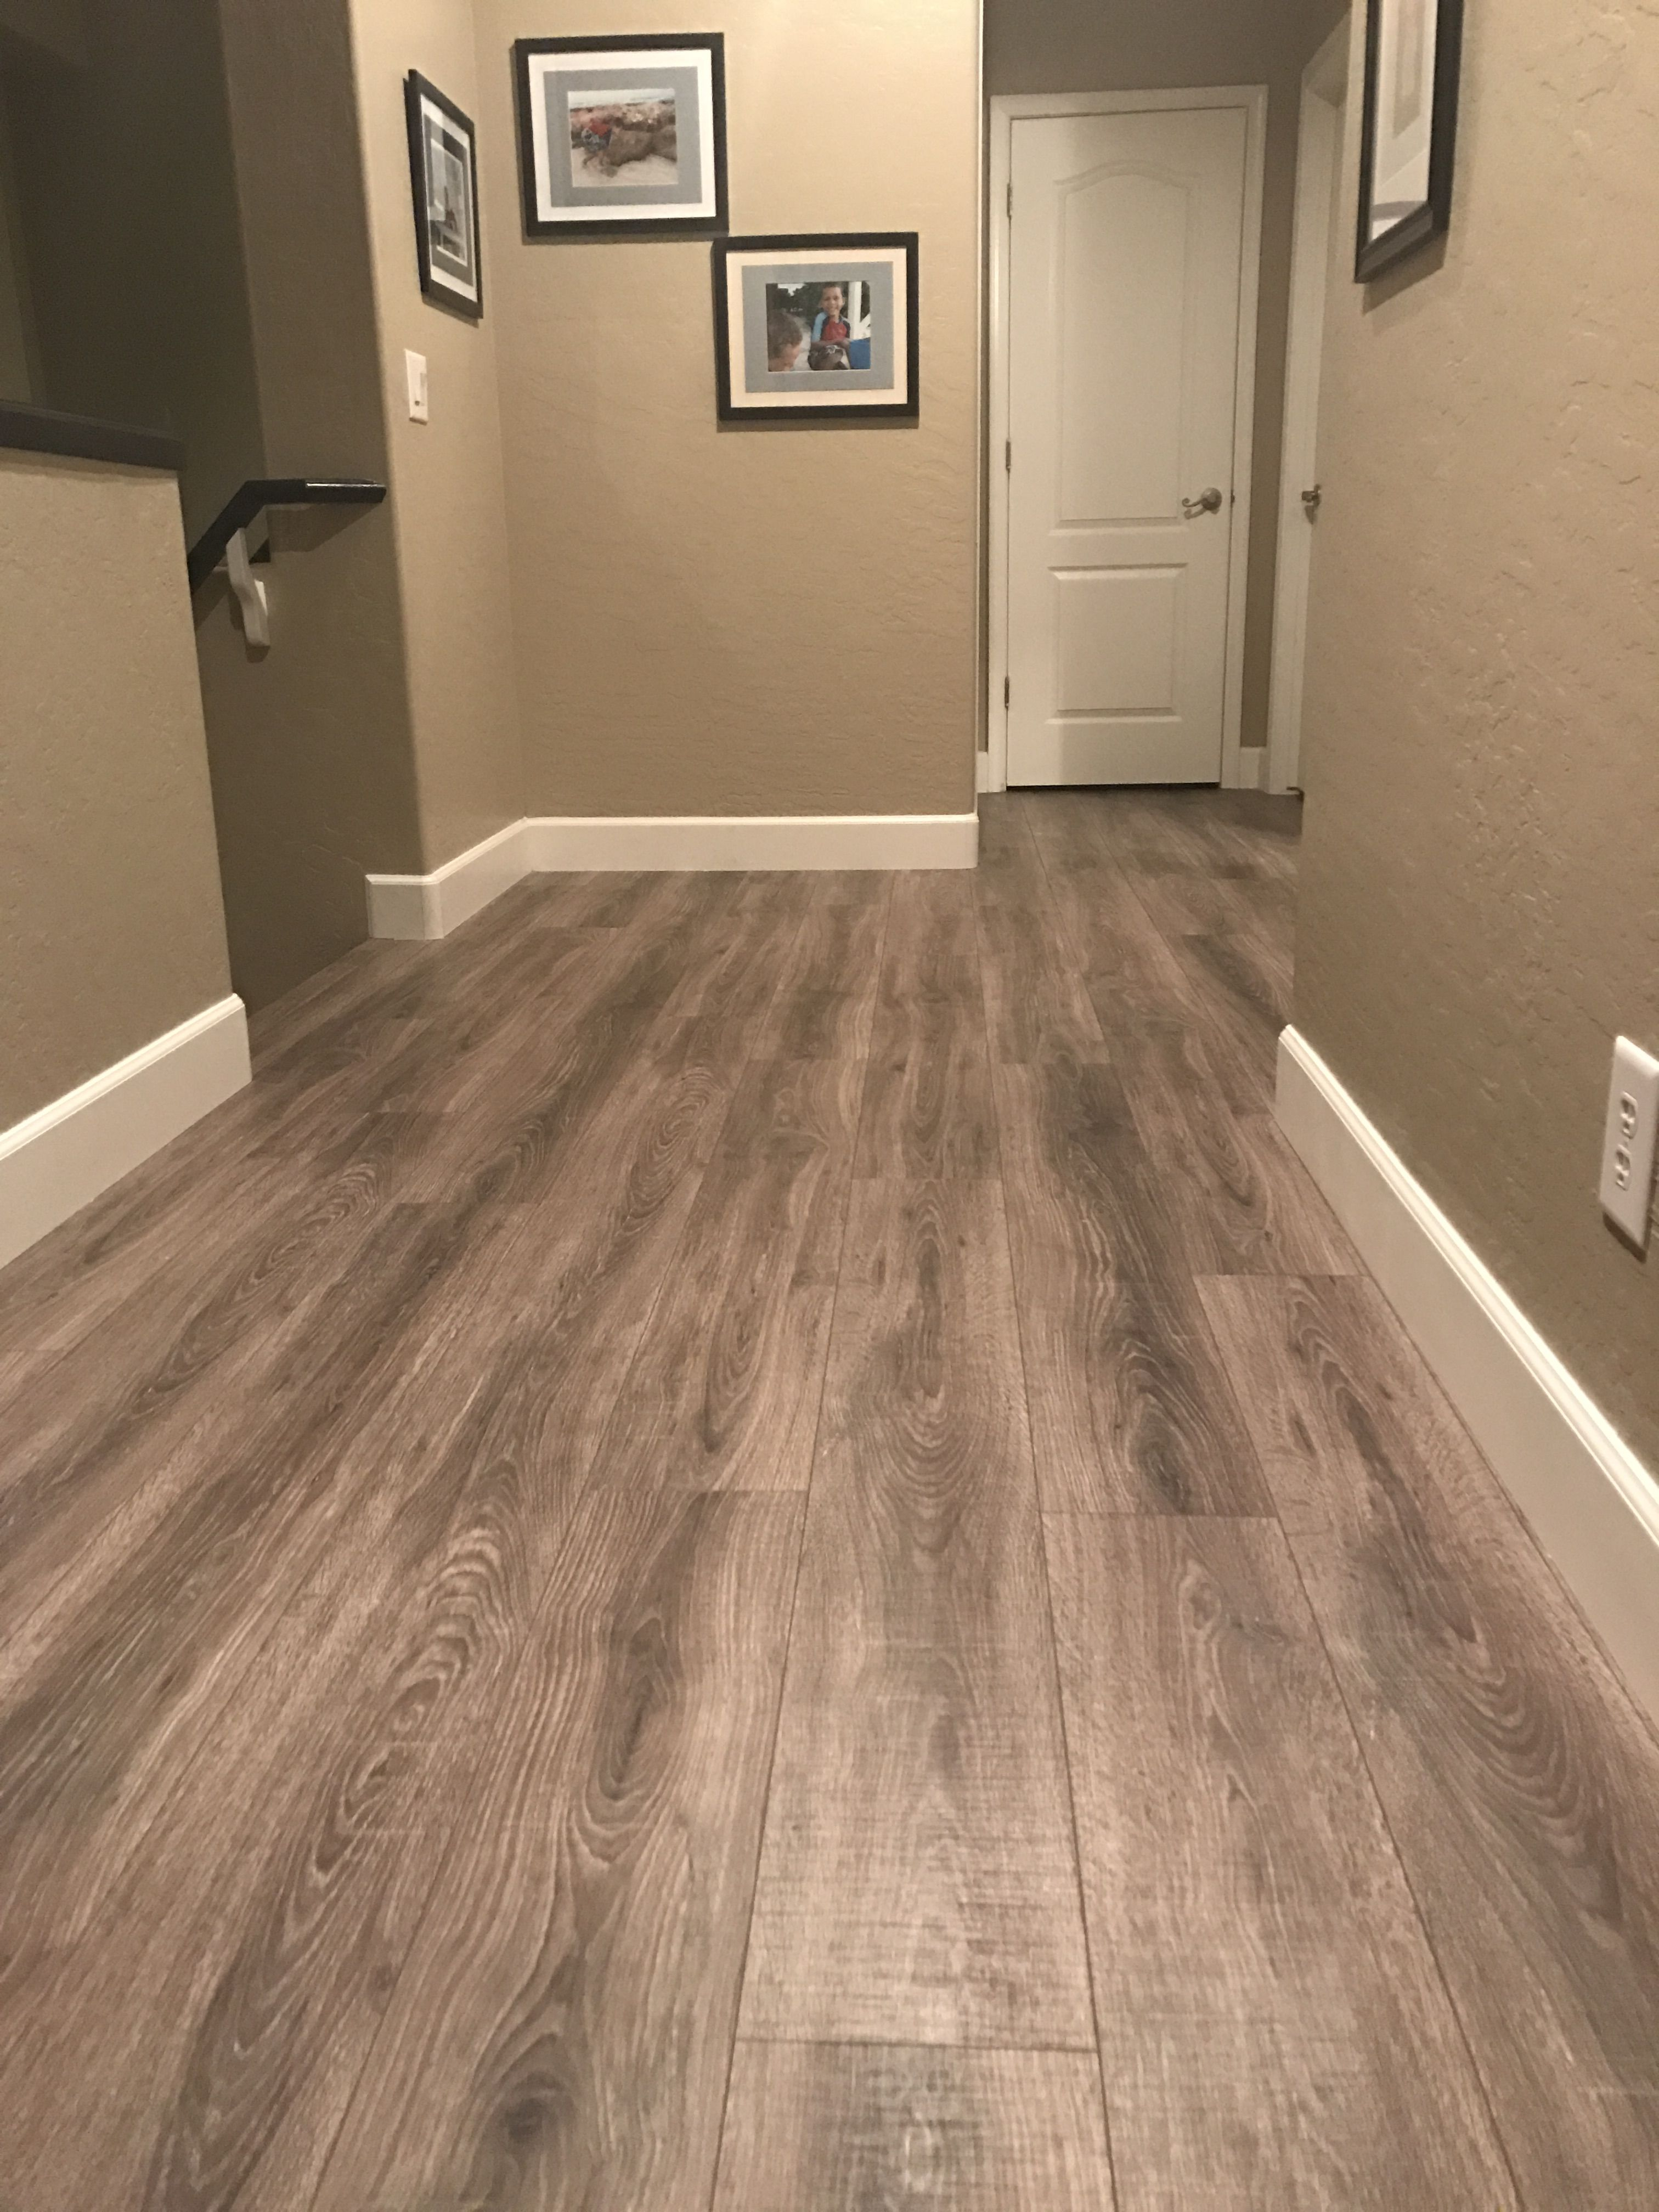 Laminate Hardwood Flooring For Enhancing Your Floor Ideas: Mohawk Vintage Selection Driftwood Laminate Wide Planks